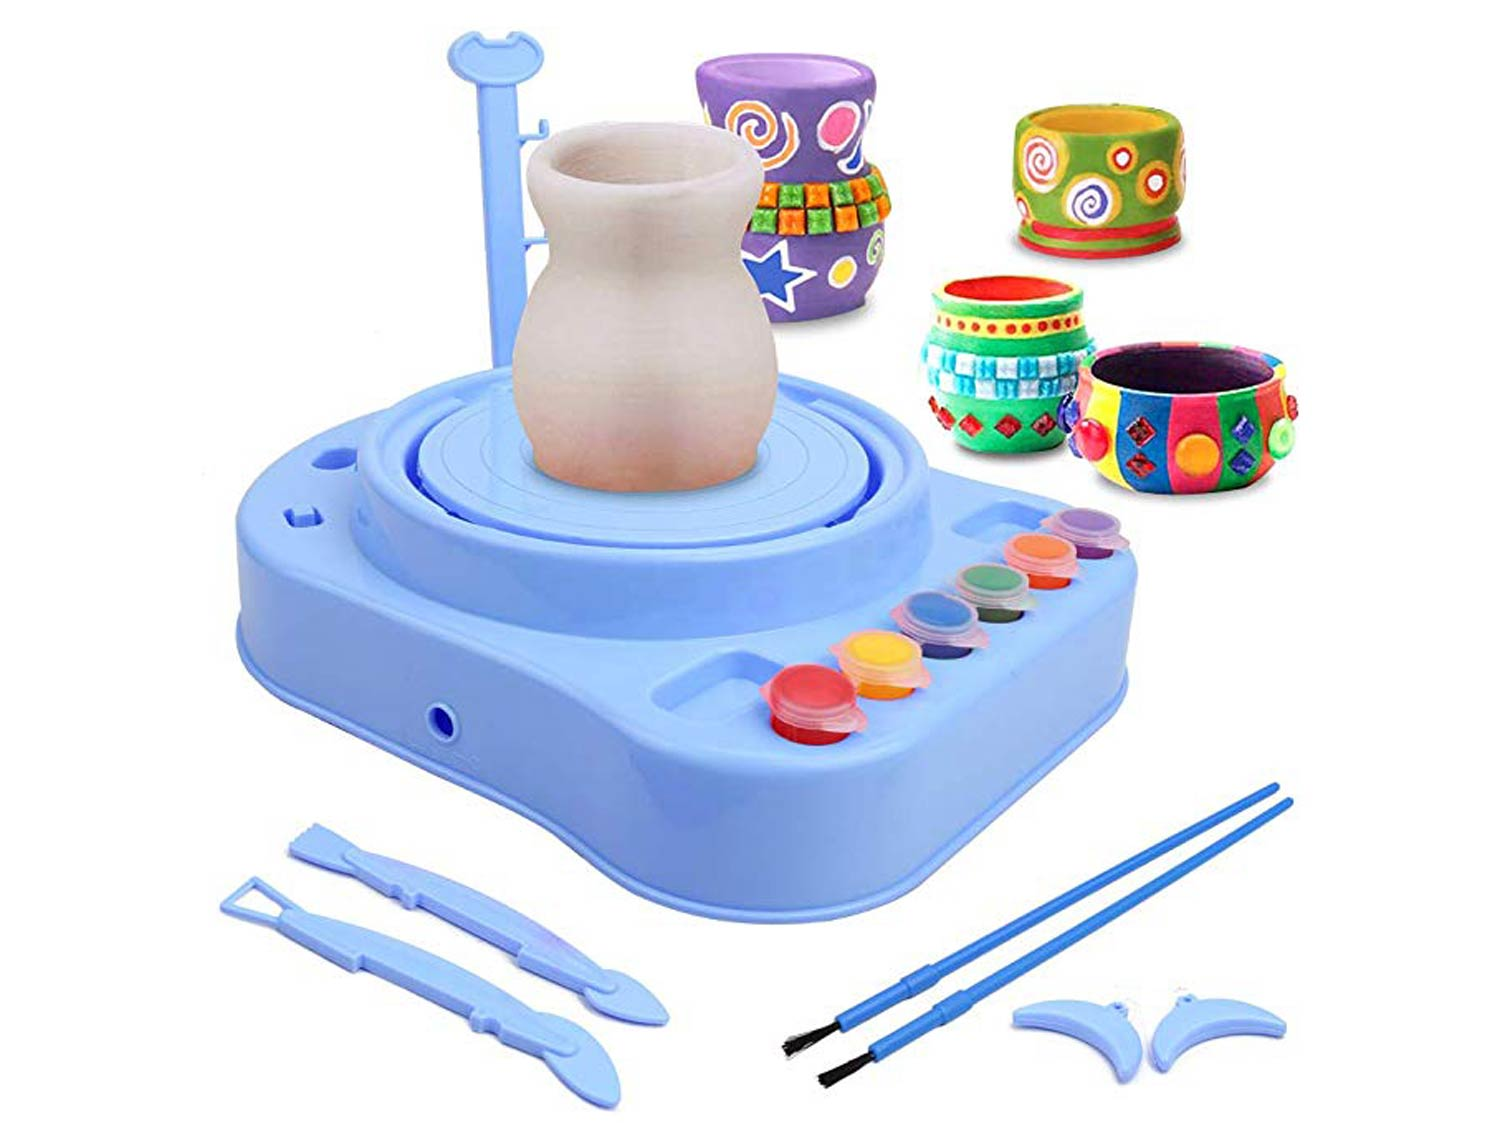 Pottery Wheel, Pottery Studio, Craft Kit, Artist Studio, Ceramic Machine with Clay, Educational Toy for Kids Beginners (Blue)